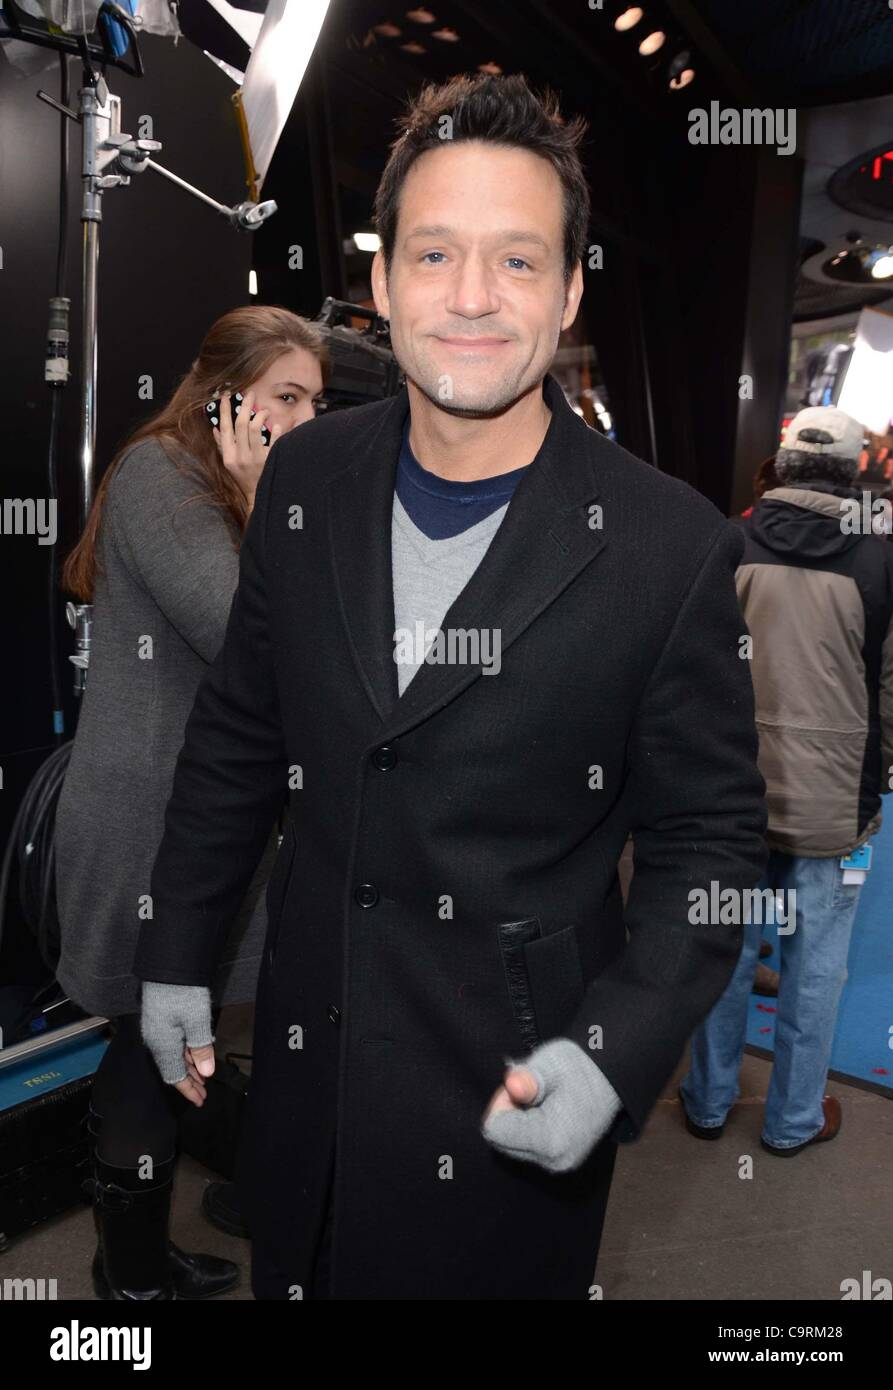 Josh Hopkins in attendance for Cast of COUGAR TOWN on GOOD